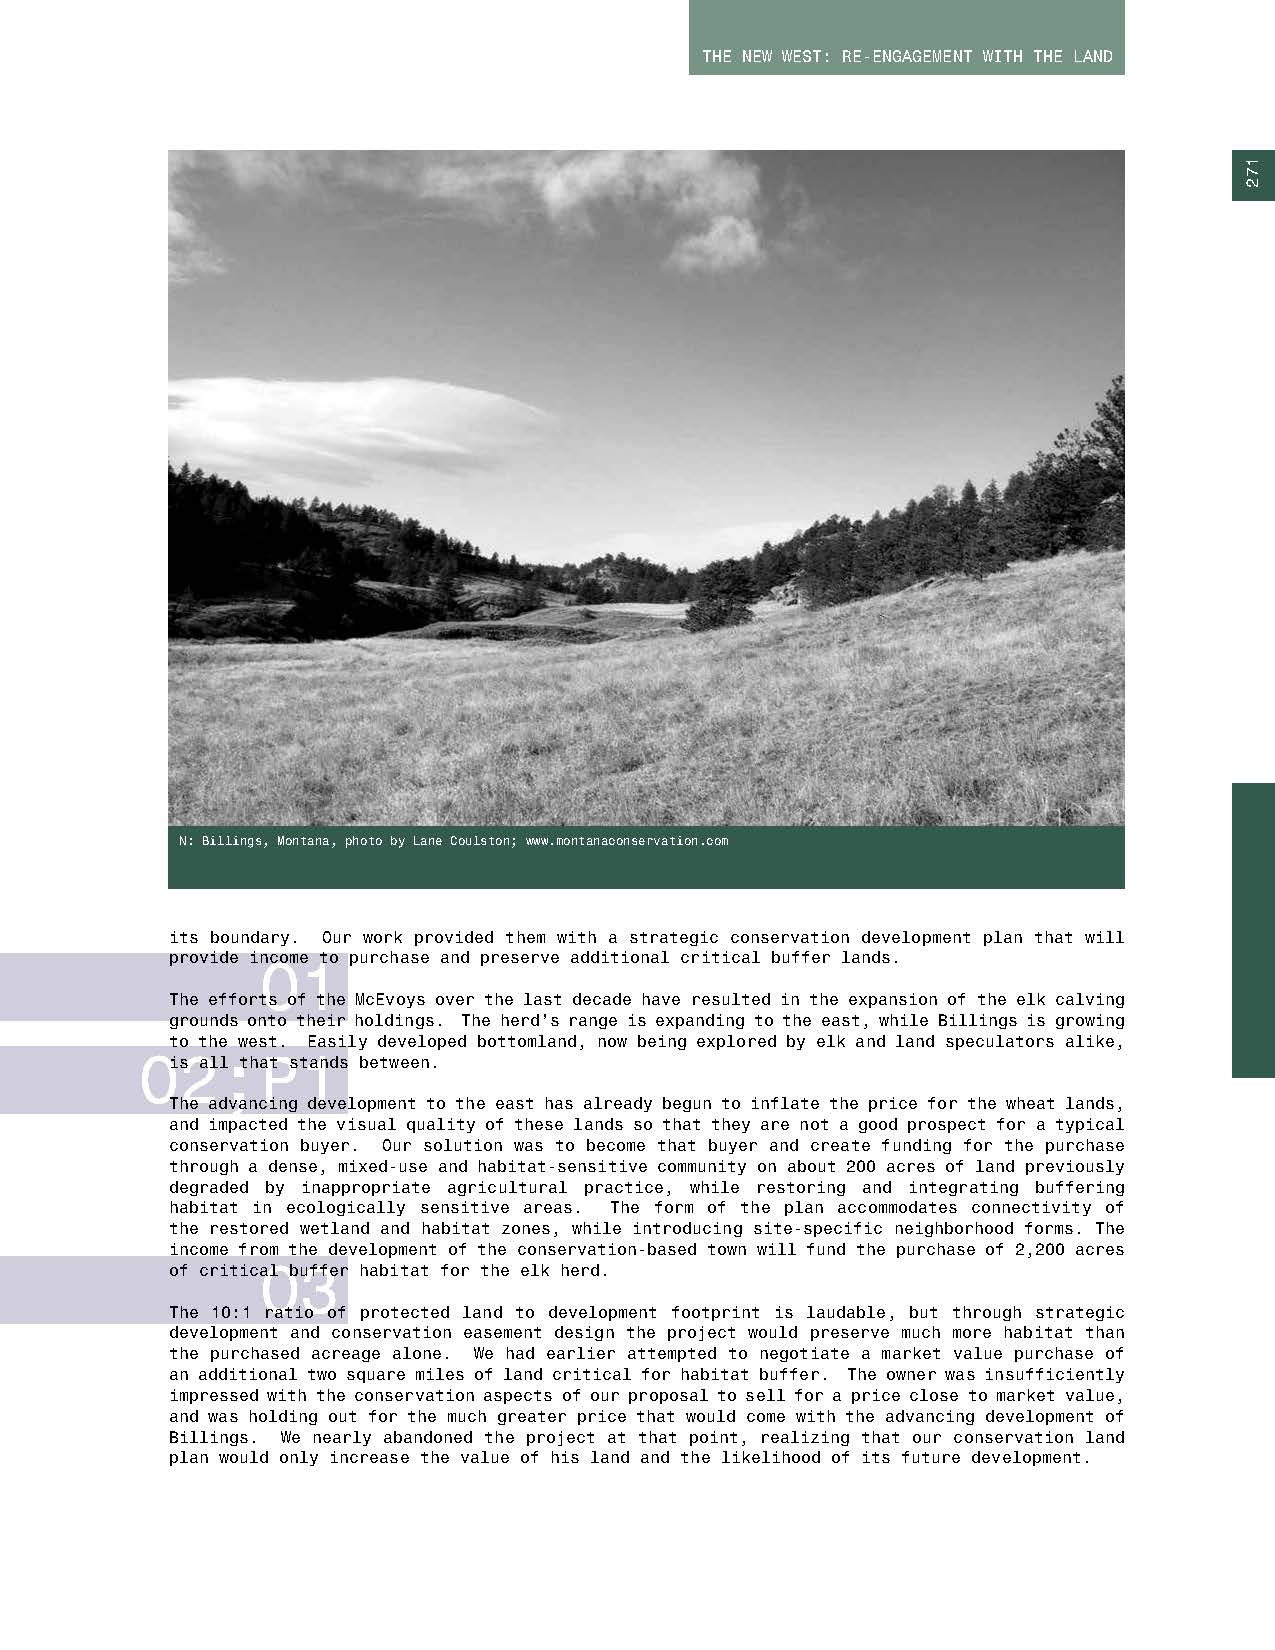 UT New West Land Co Article_Page_18.jpg